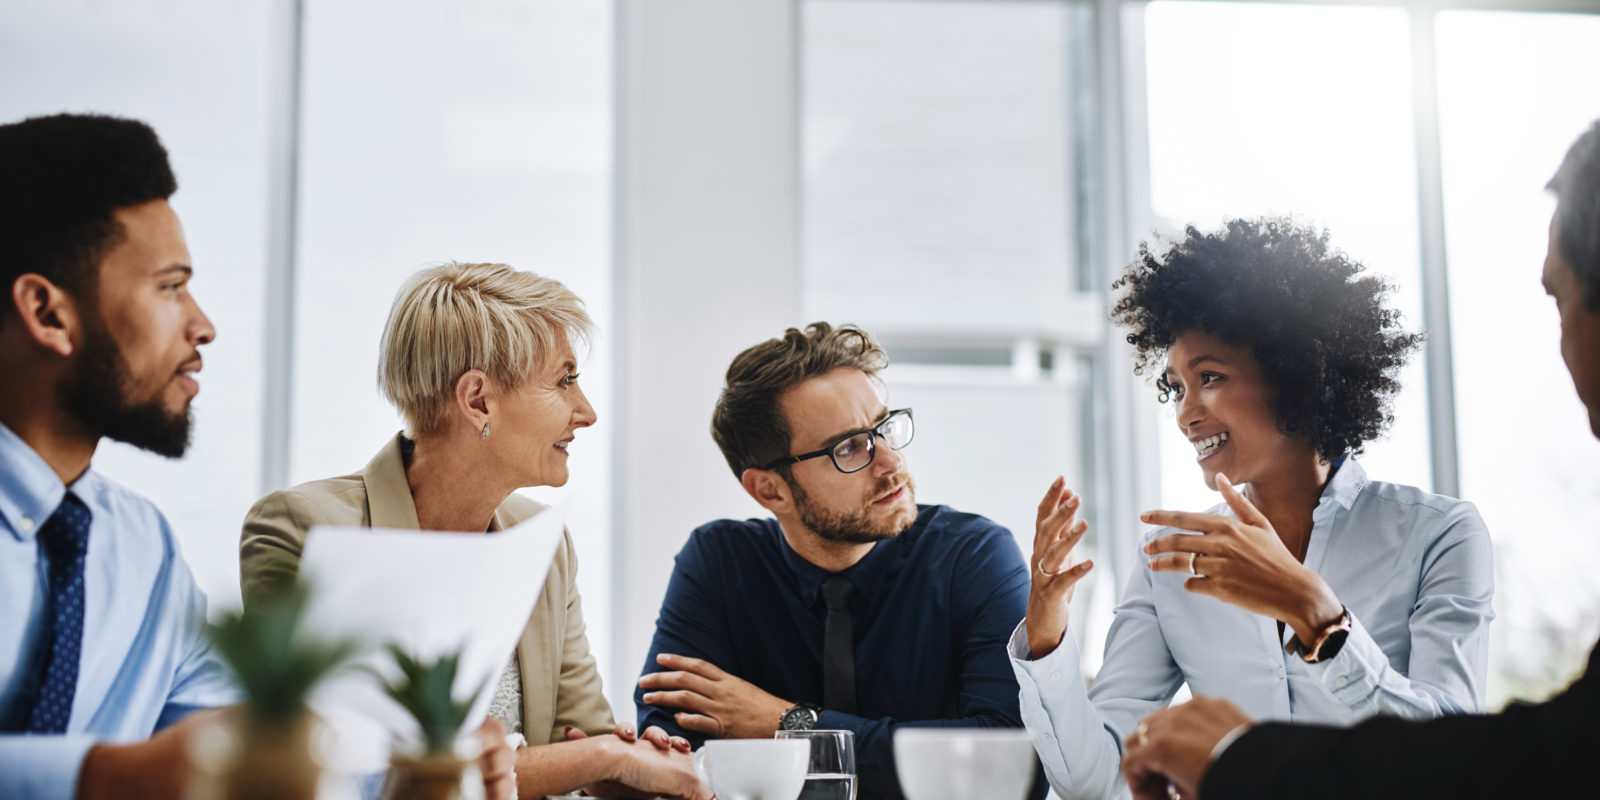 Shot of a group of business people sitting together in a meeting